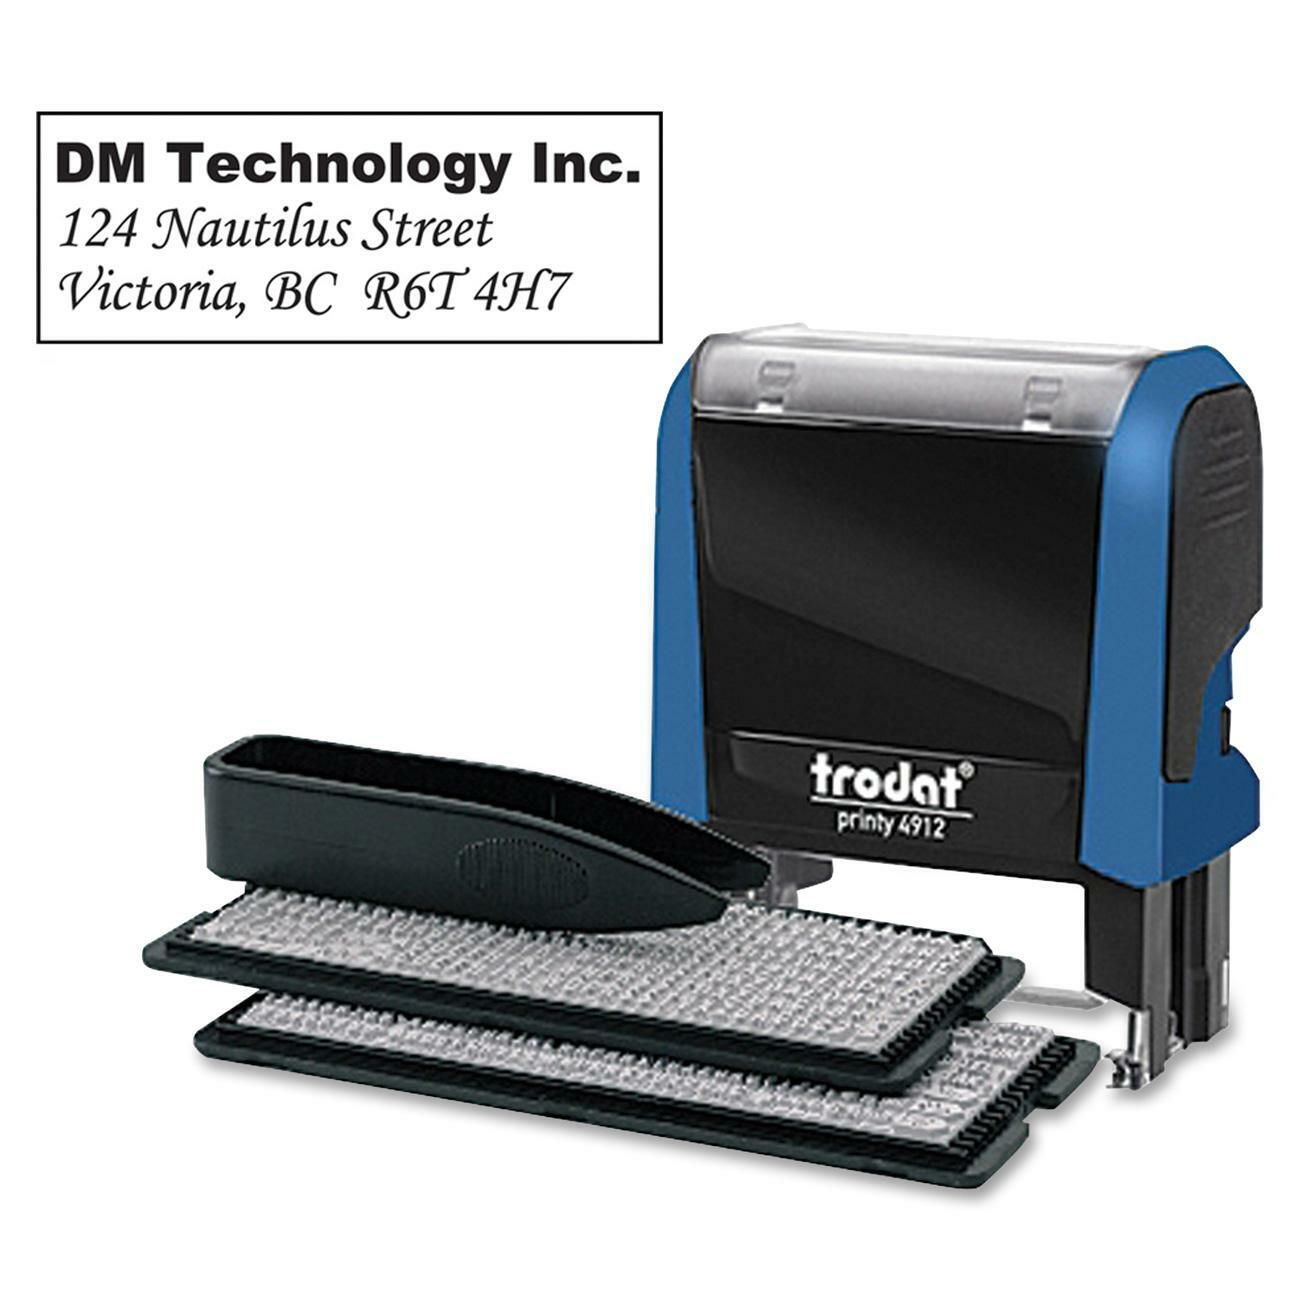 Trodat do it yourself typomatic stamp kit madill the office company click to enlarge solutioingenieria Choice Image